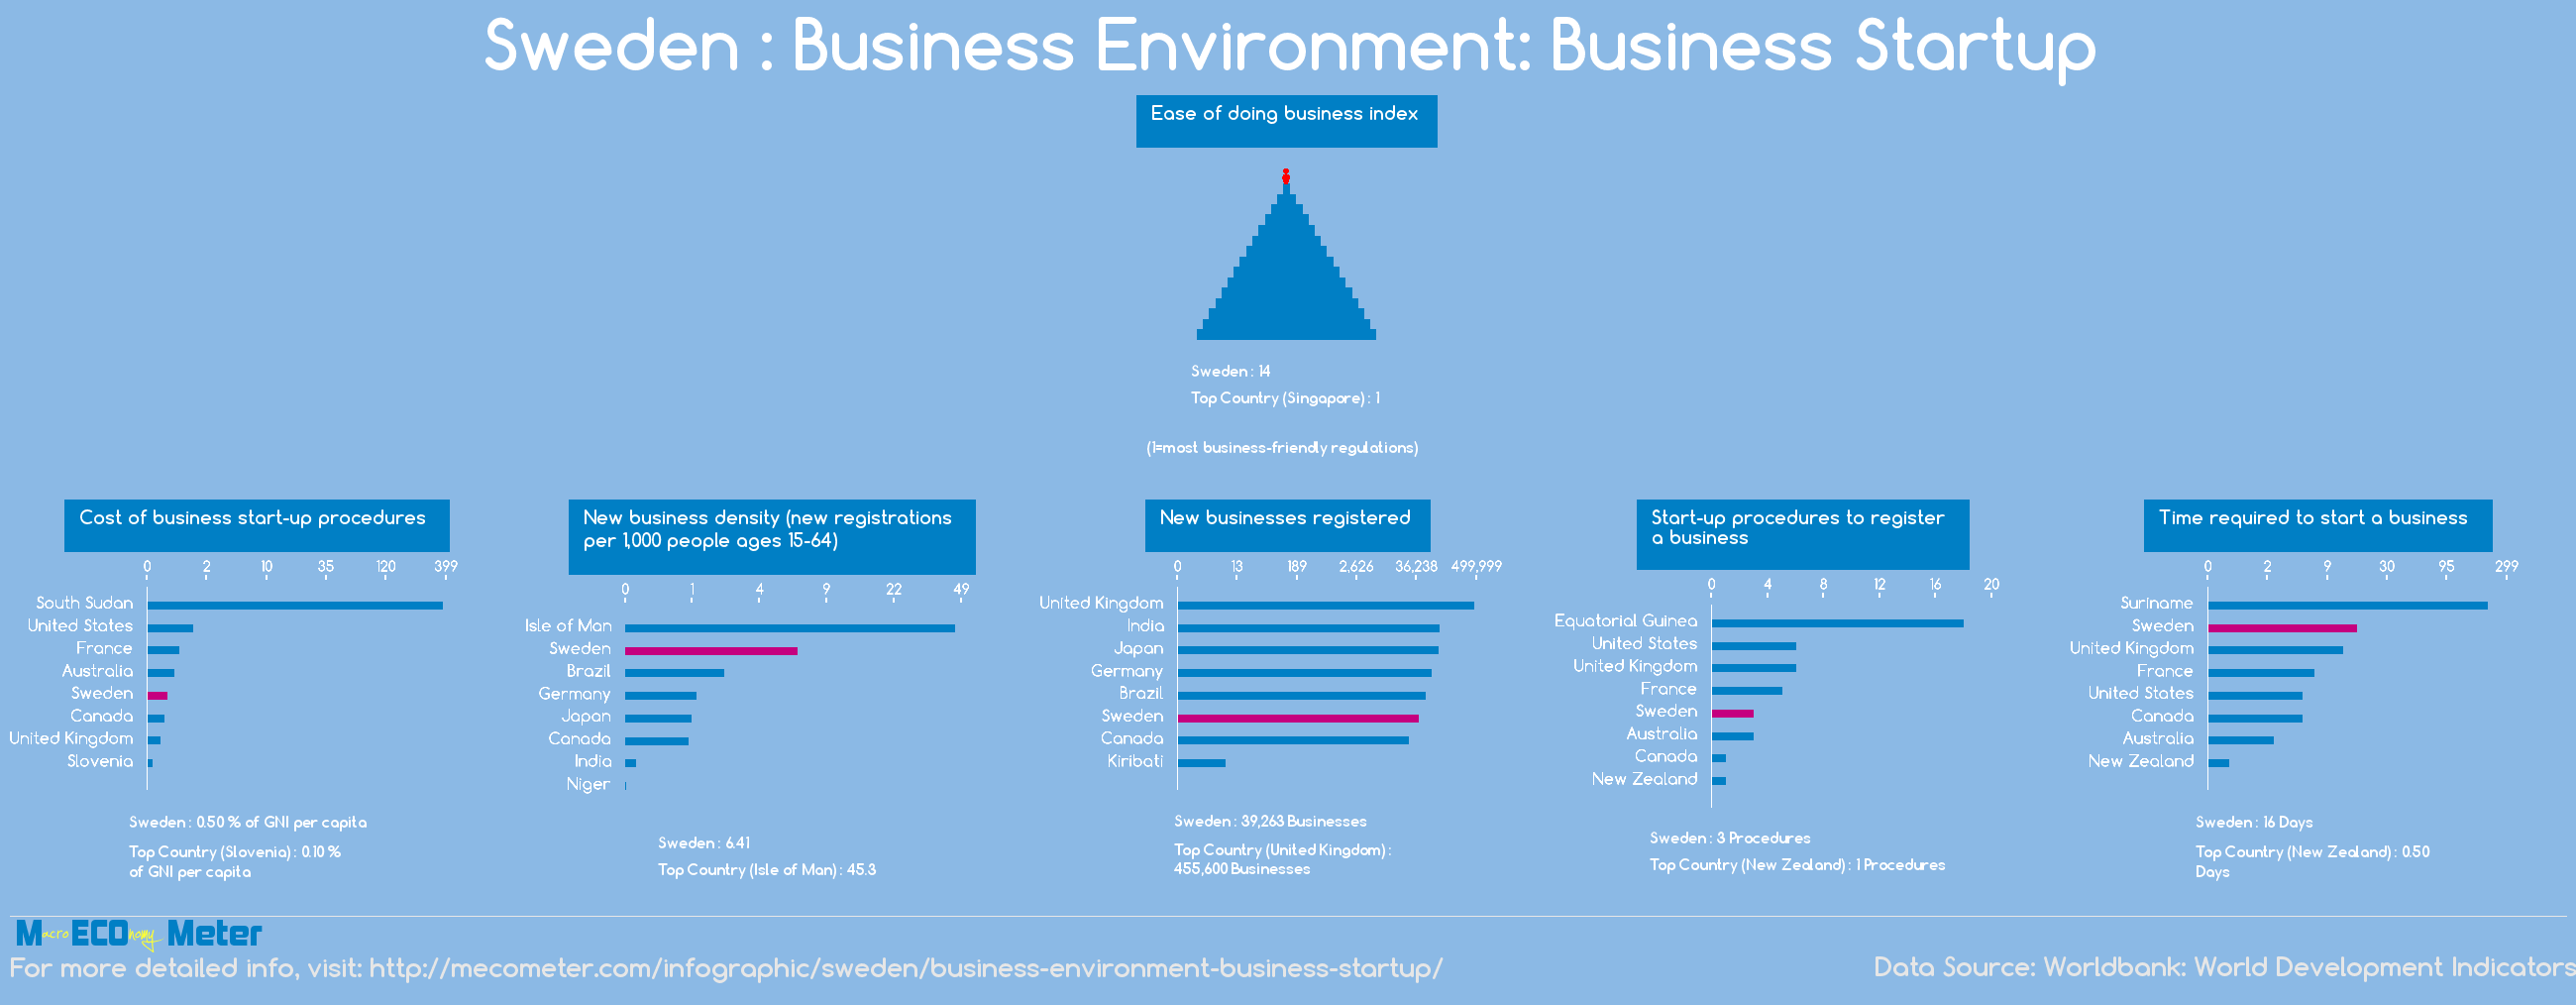 Sweden : Business Environment: Business Startup